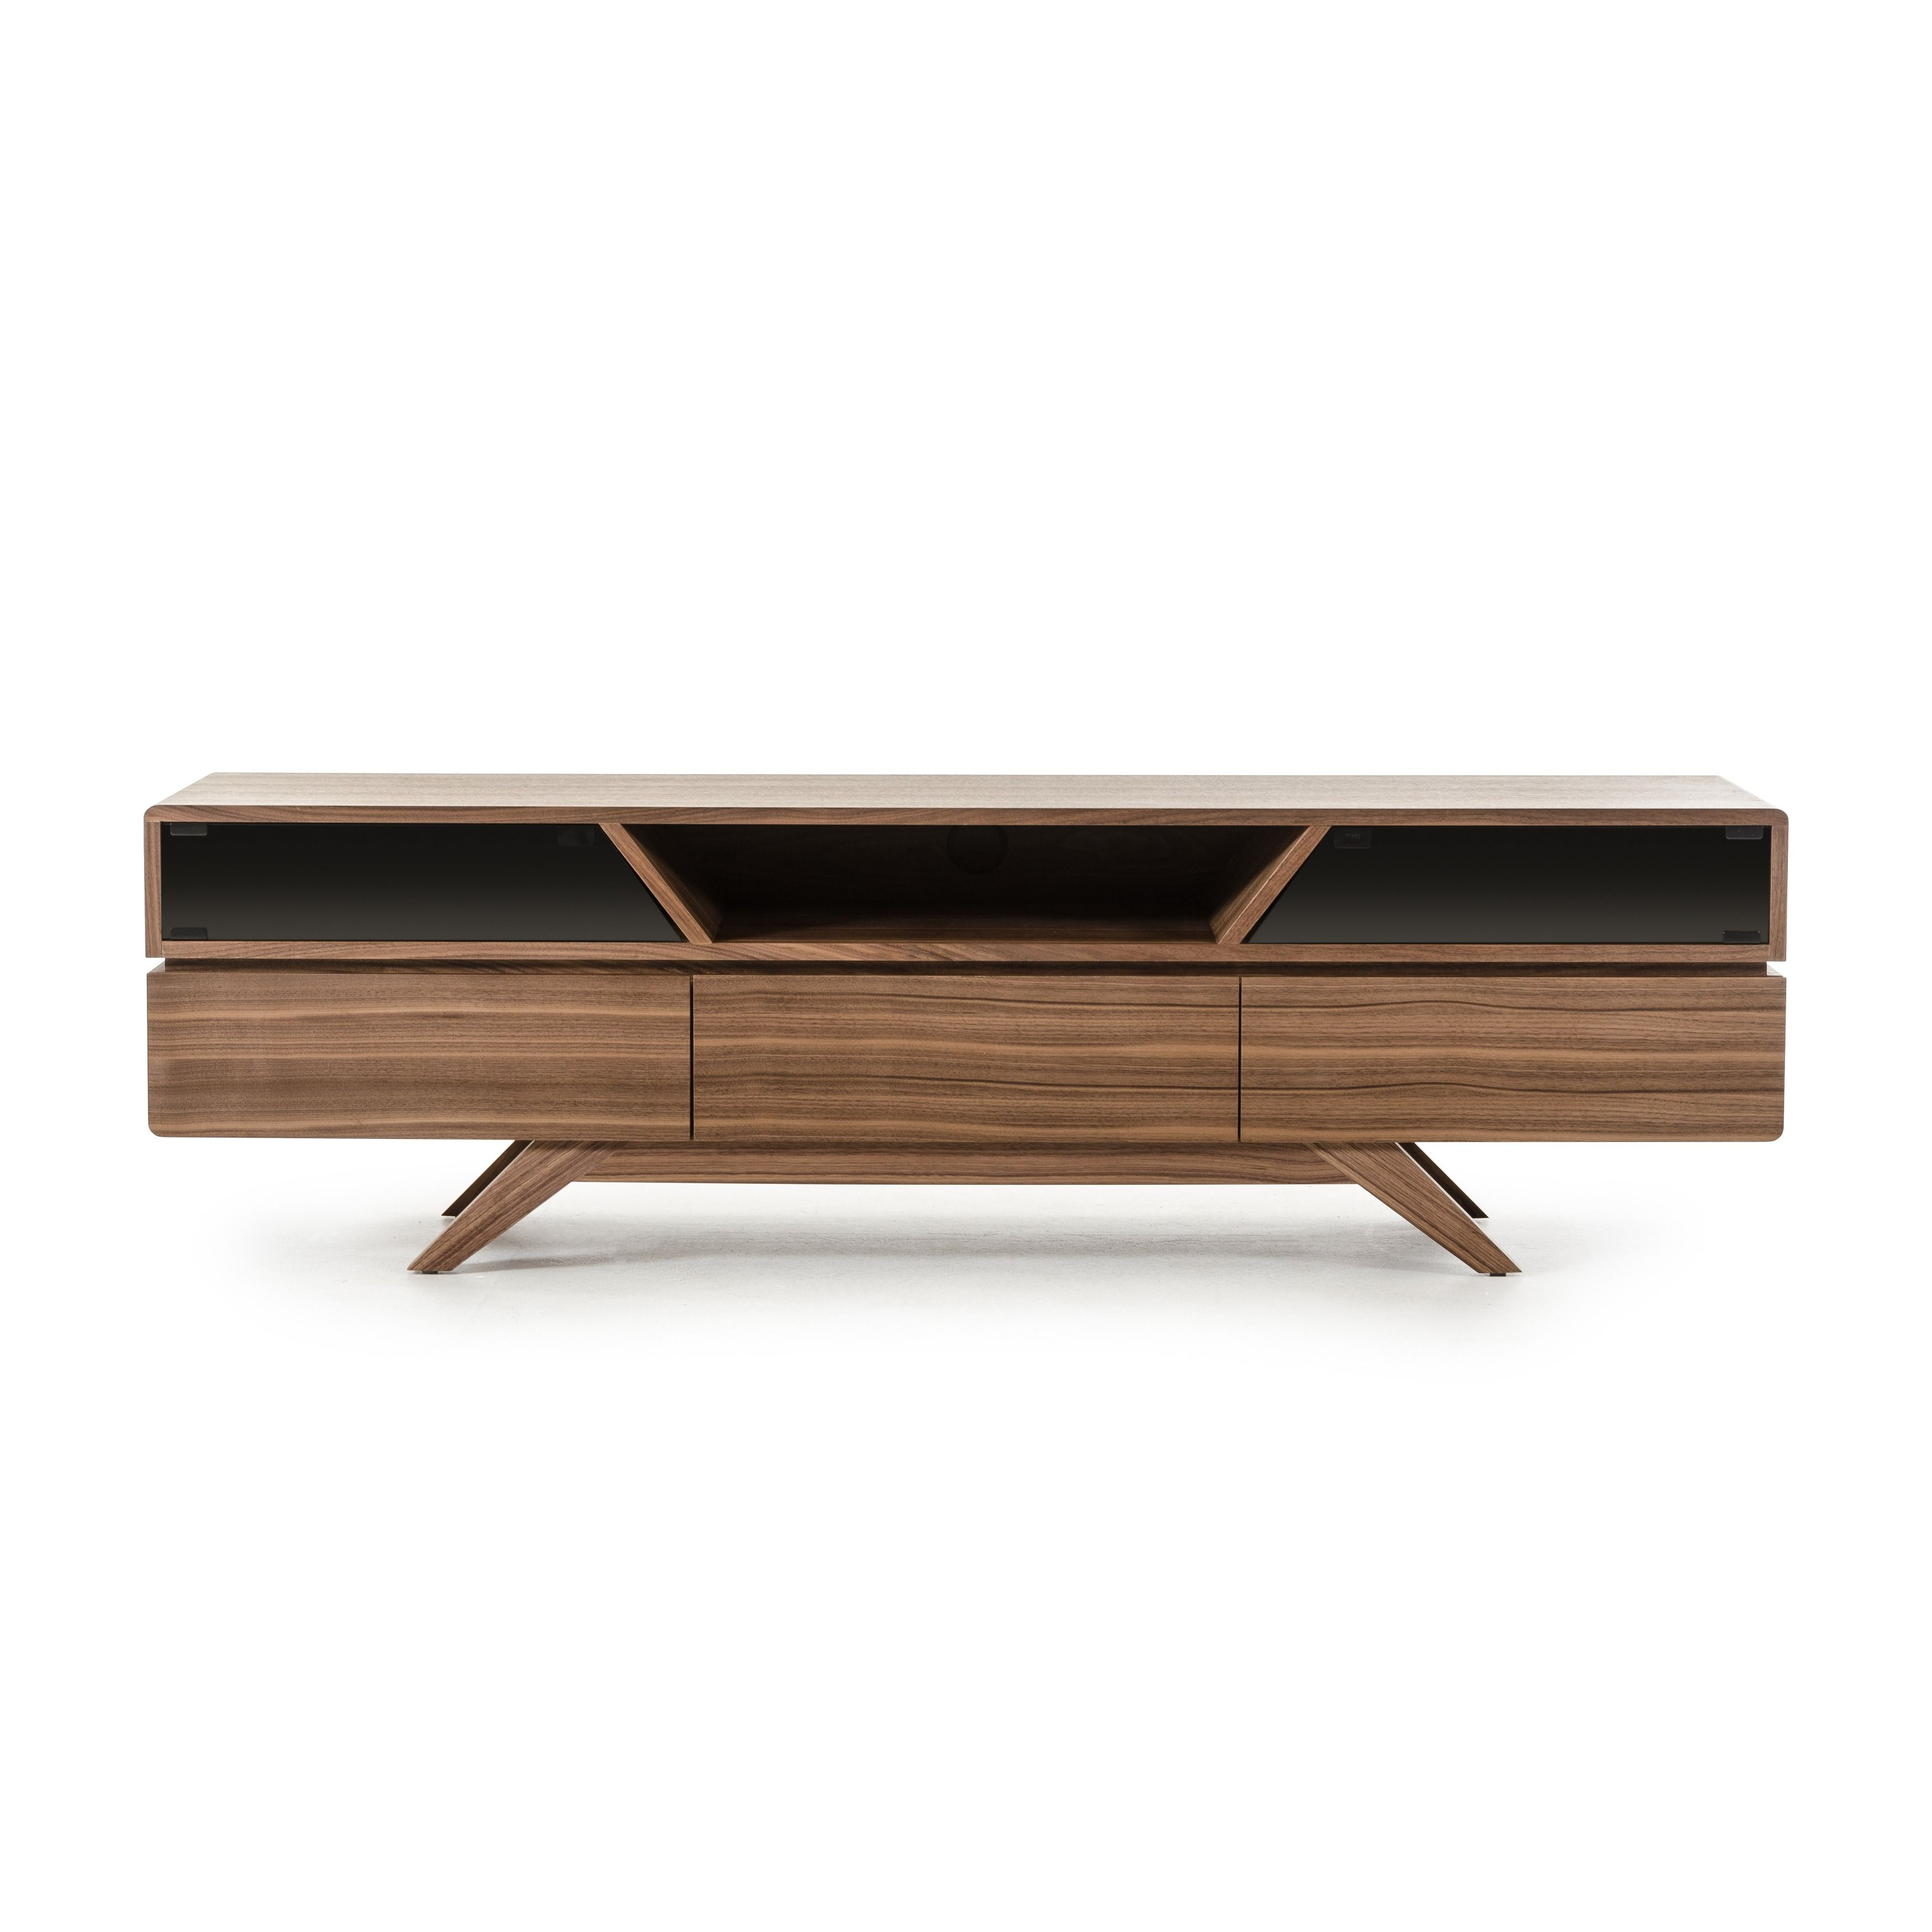 Couchtisch Bauhaus Let Your Tv Stand Out On This Soria Walnut Tv Stand From Vig